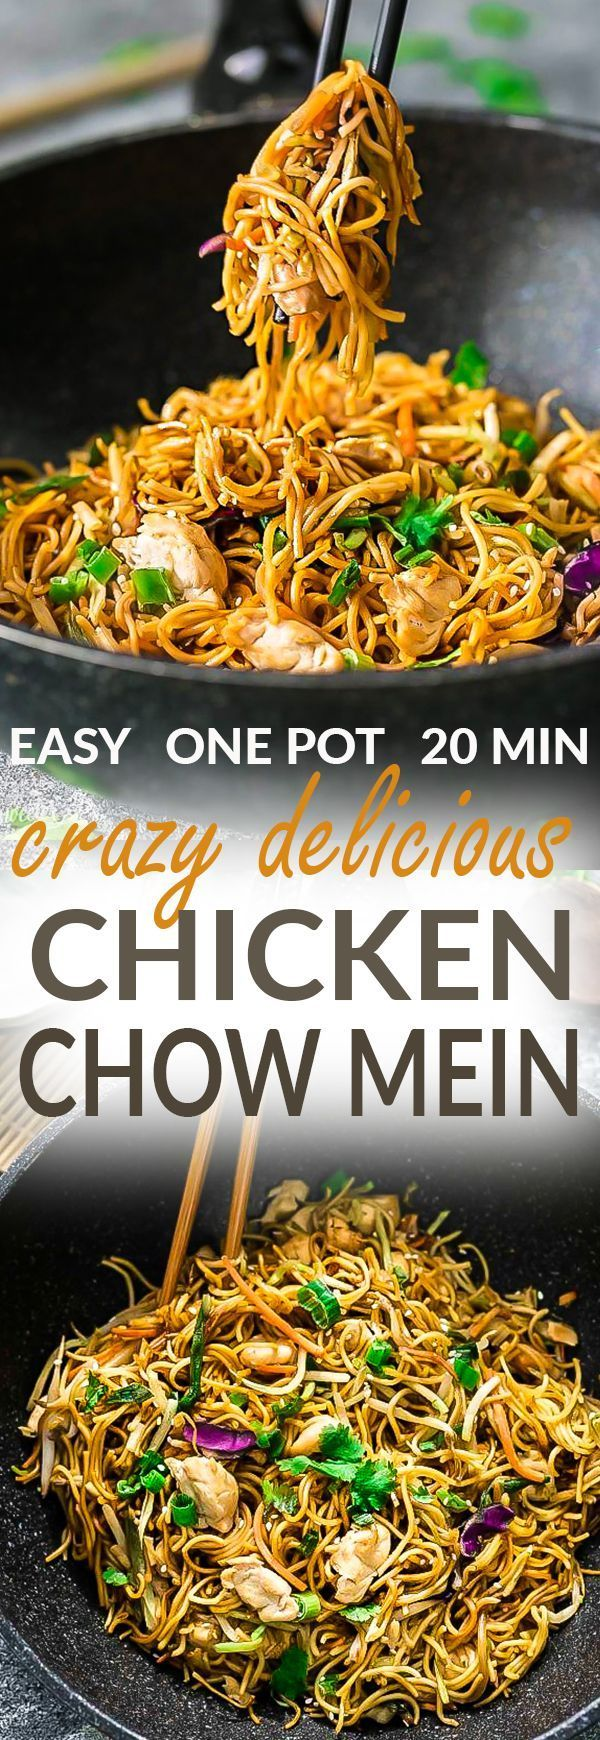 Chicken Chow Mein is the perfect easy weeknight meal! Best of all, it comes together in under 20 minutes with in just one pot! Forget calling that local Chinese takeout restaurant, this delicious recipe is so much better with authentic flavors. Seriously the best!! Plus makes great leftovers or make a batch for Sunday meal prep for school and work lunches! Plus step by step recipe video.